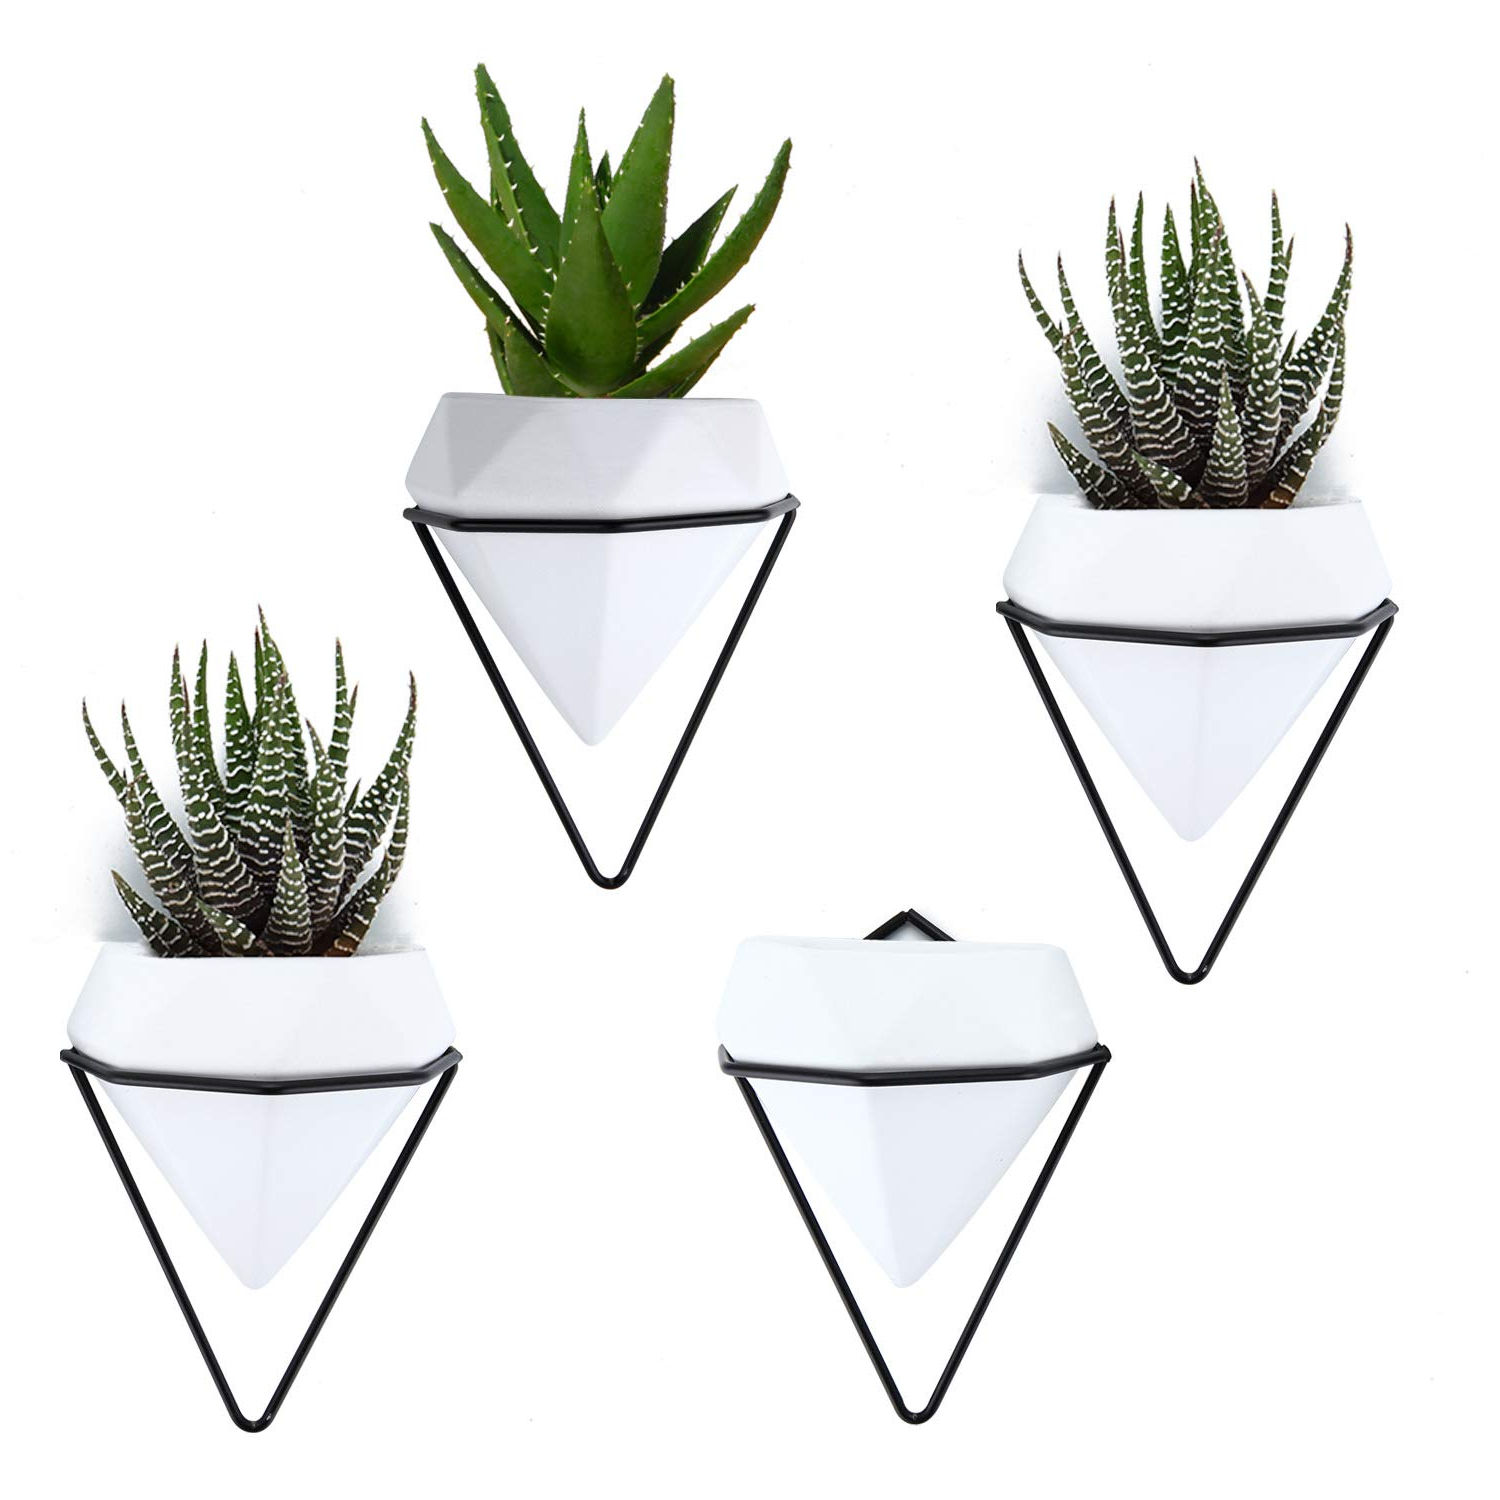 Most Popular Amazon: T4U Diamond Wall Planters Geometric Wall Vases Set Of 4 Intended For Trigg Ceramic Planter Wall Decor (View 13 of 20)